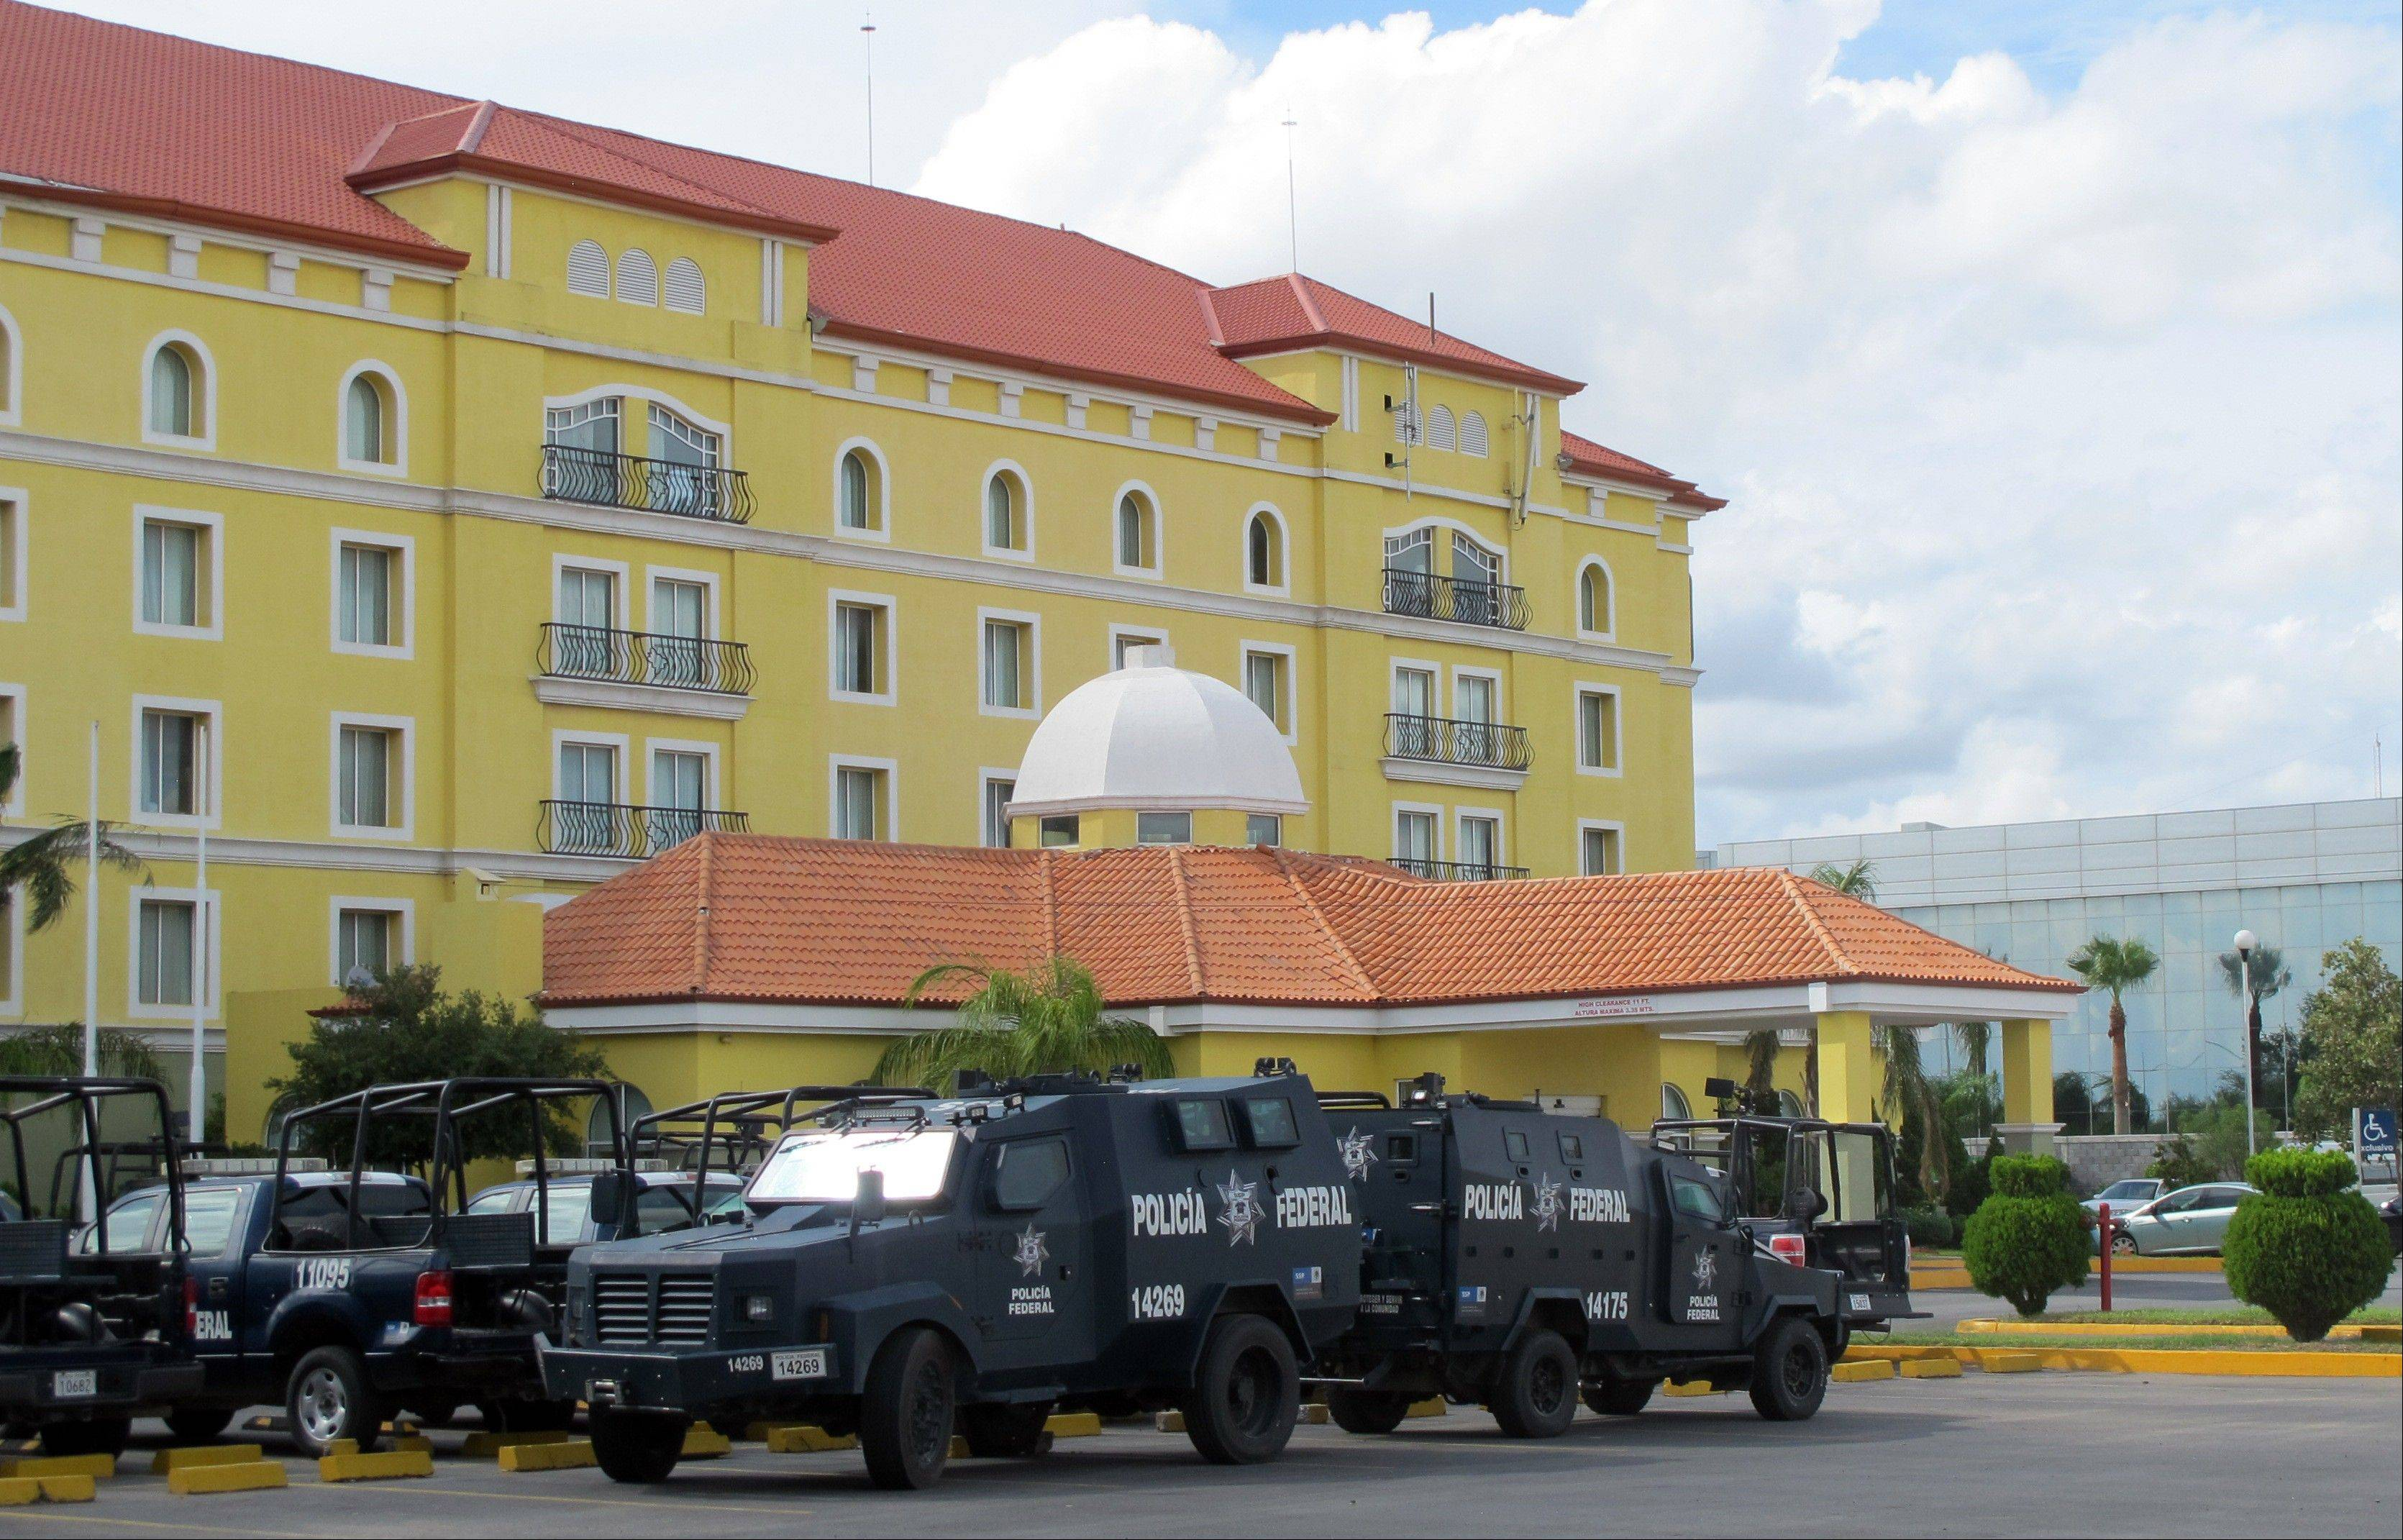 Police vehicles sit parked outside a hotel in Nuevo Laredo, Mexico, Tuesday, July 16, 2013. Local hotels are housing many of the federal police, state police and members of the armed forces who patrol the northern border city, which is home to the Zetas organized crime group.